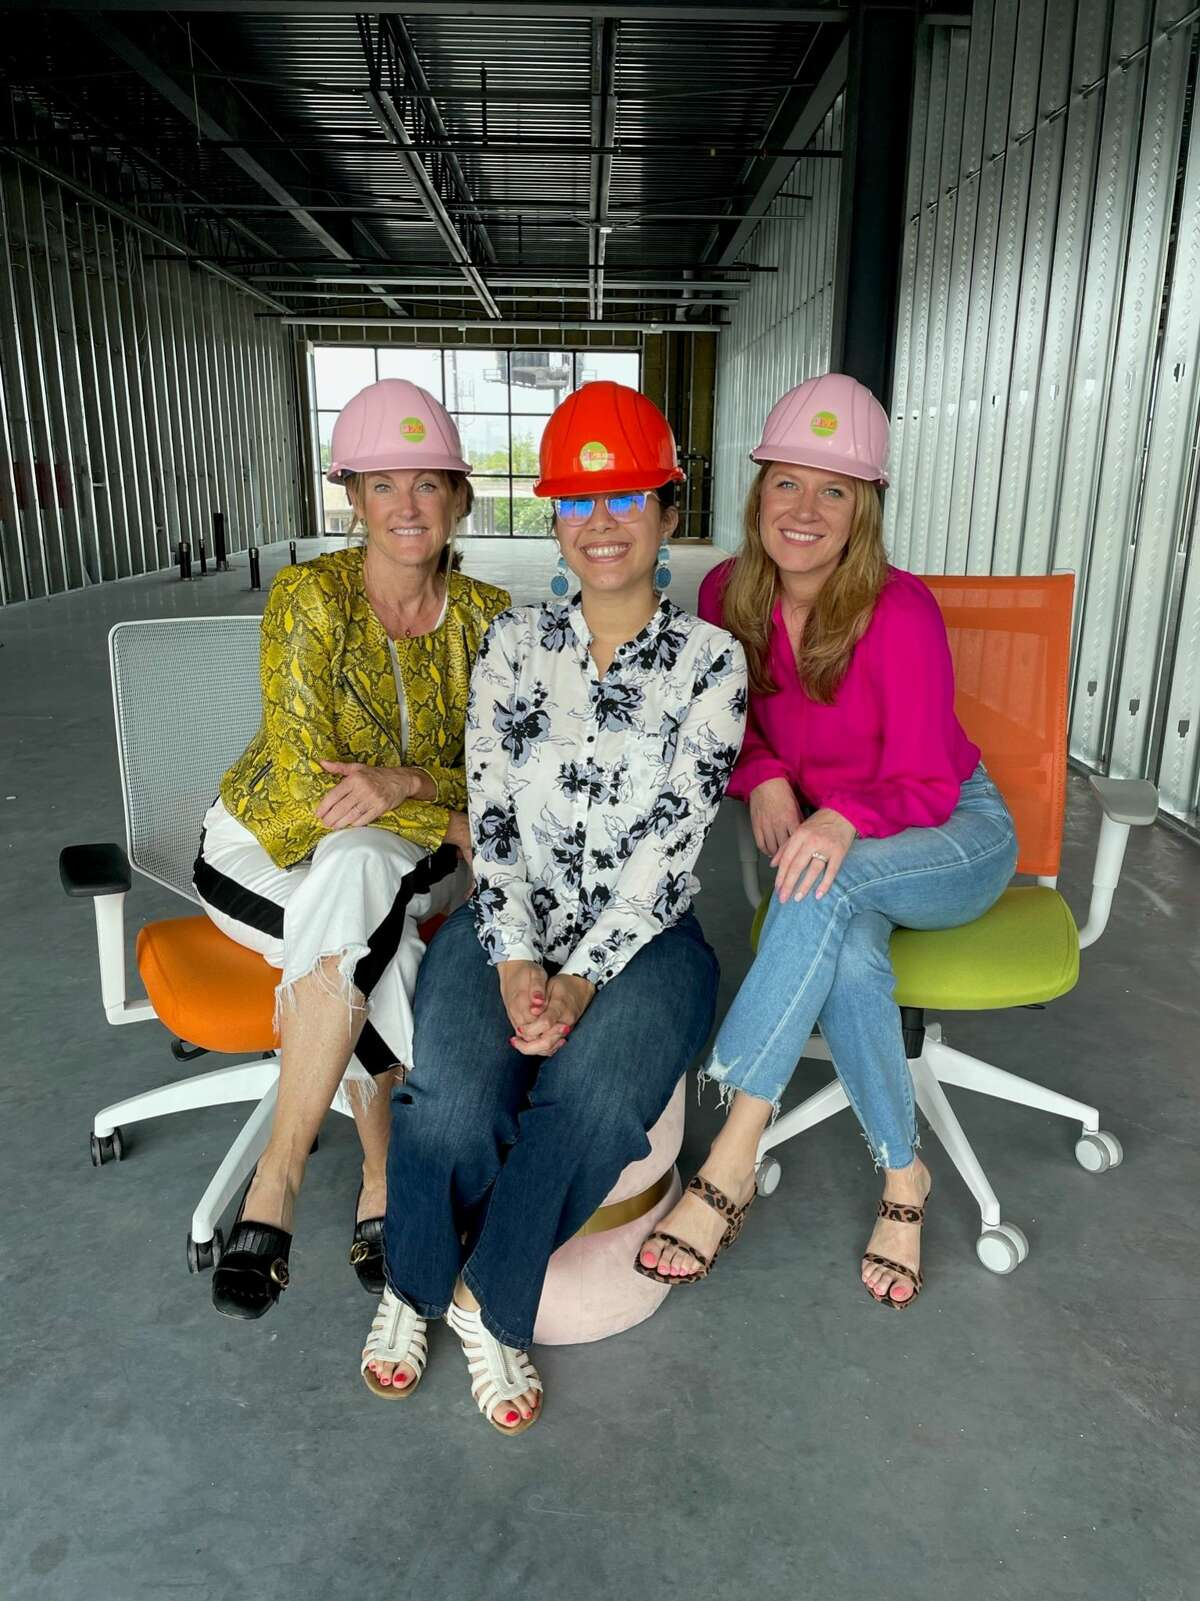 SheSpace founders Stephanie and Katie Tsuru with the lead architect on the expansion, Norgerie Rivas of Estudio in the new space.SheSpace is expanding at 2799 Katy Freeway by 1,500 square feet.